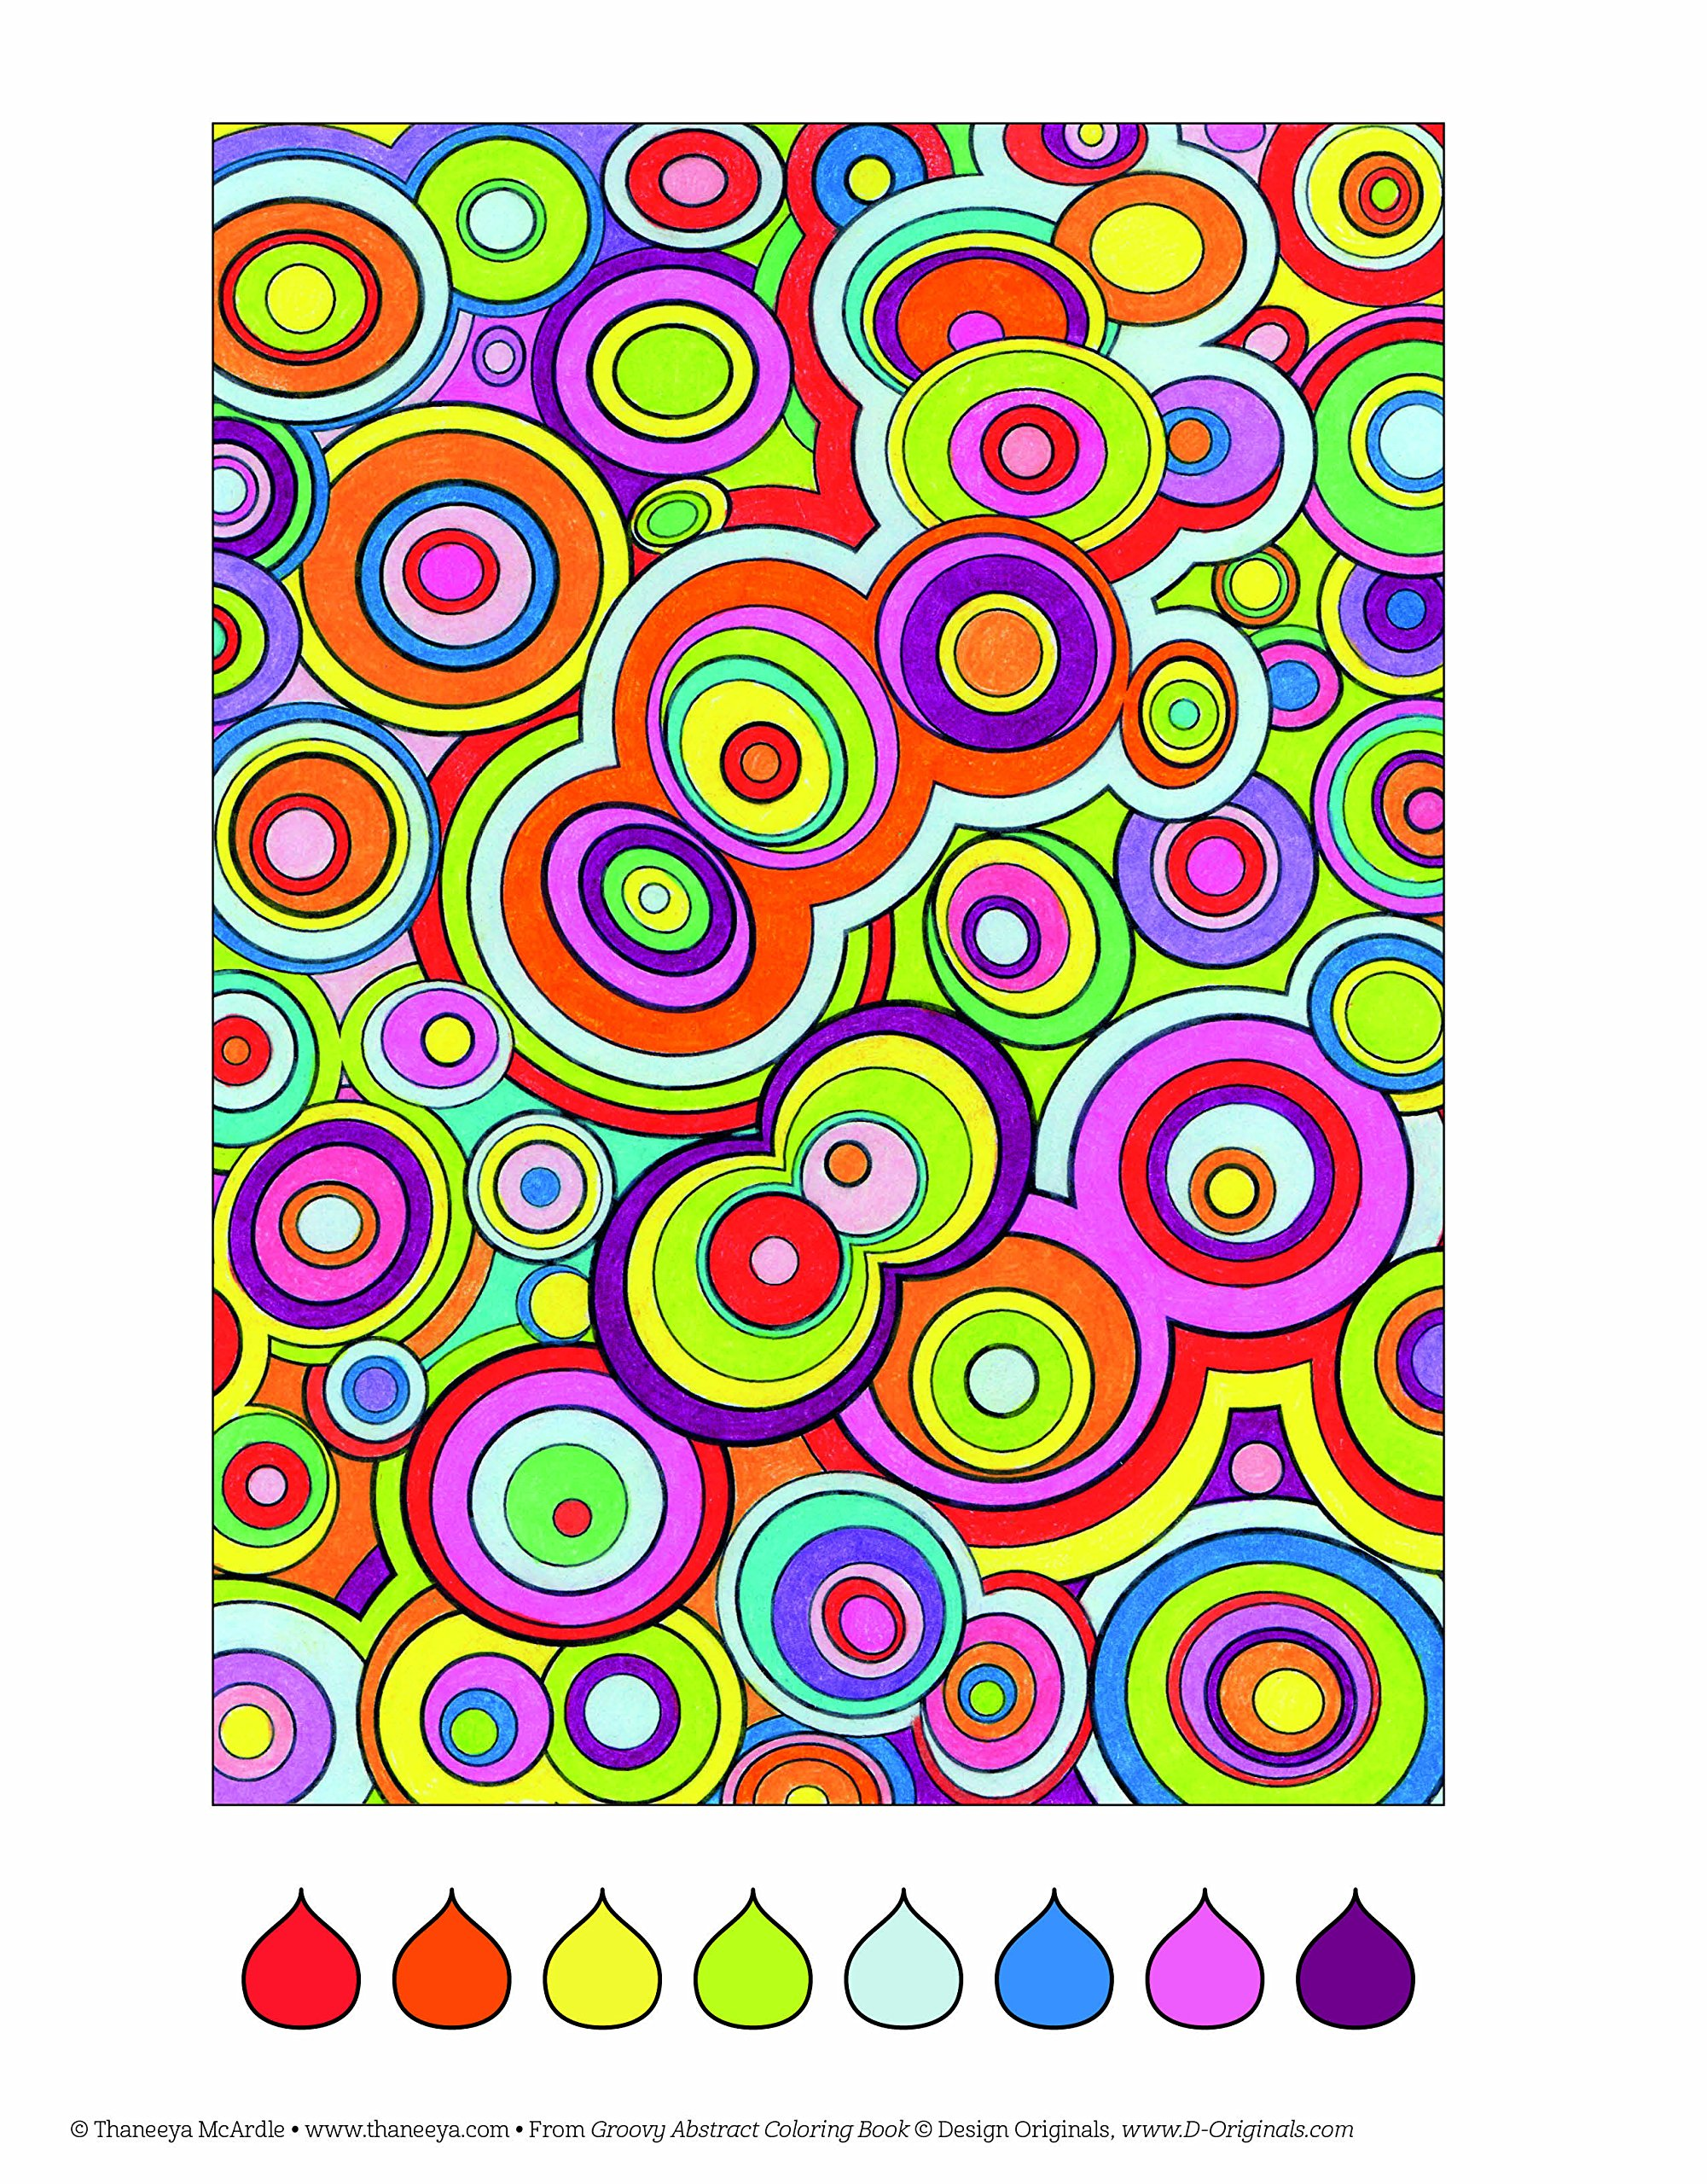 Groovy Abstract Coloring Book Is Fun Amazoncouk Thaneeya McArdle Books